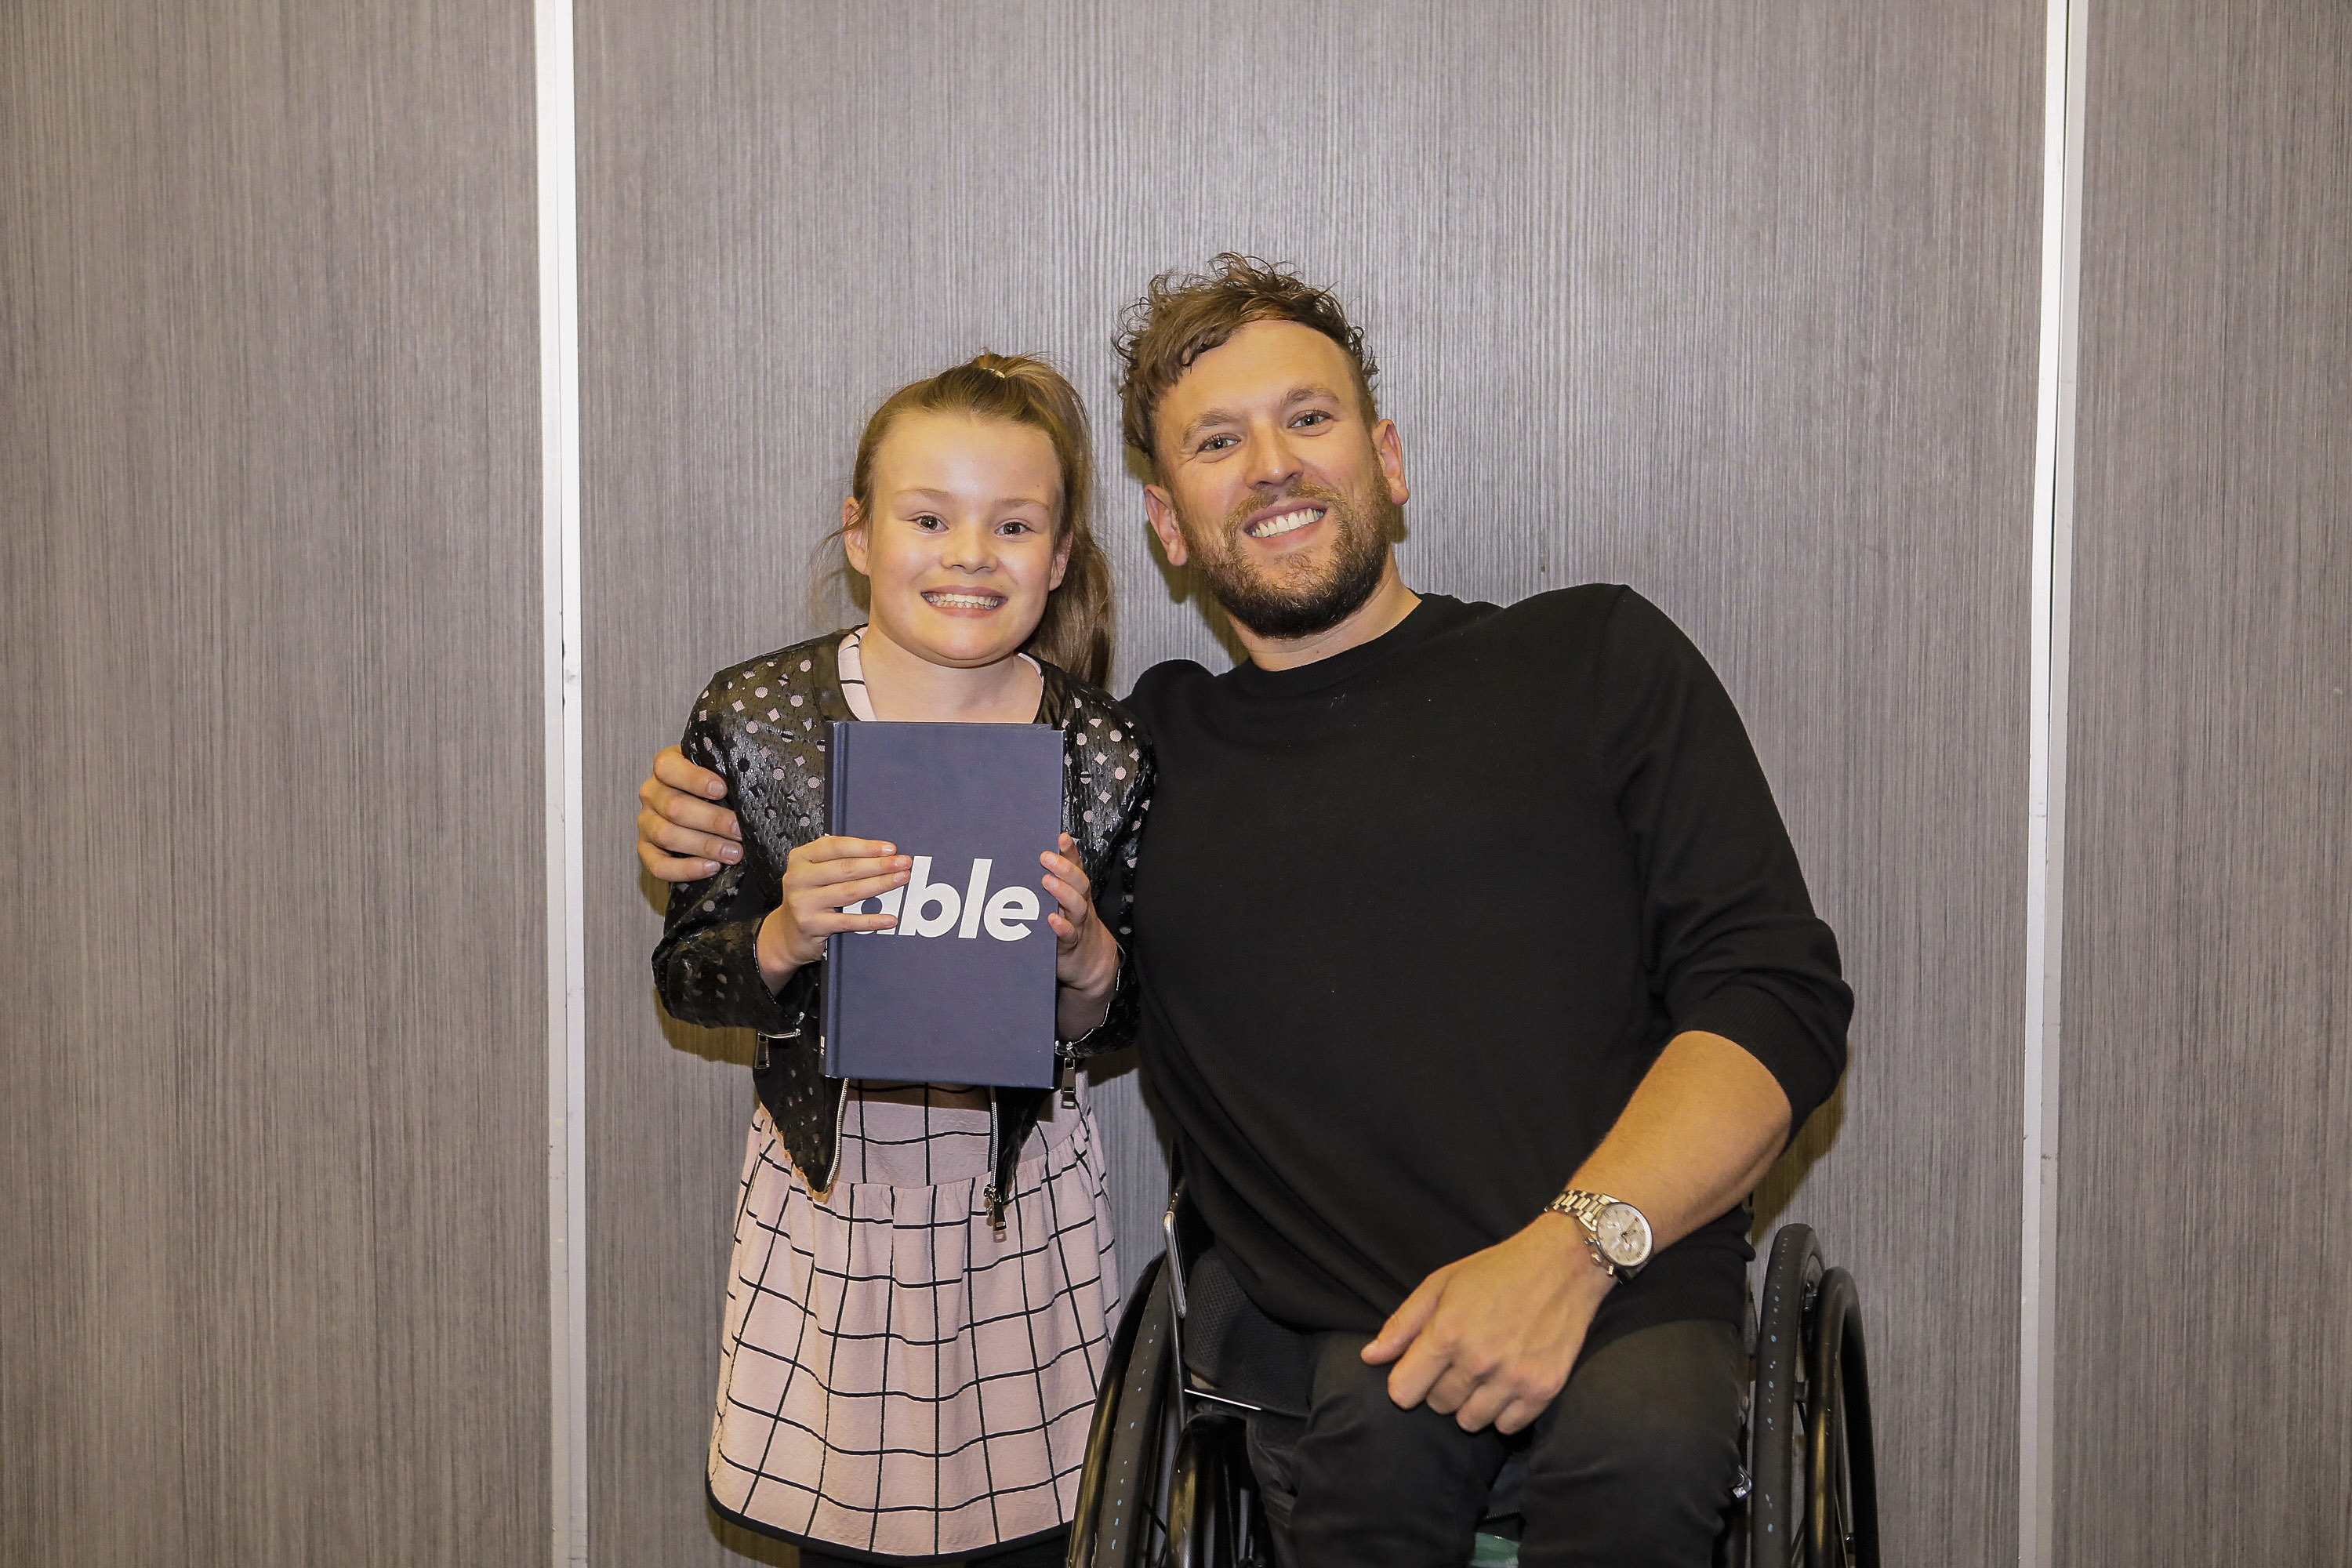 Guest Madi with Dylan Alcott OAM at the MercyCare Oration 2019 at the Perth Convention and Exhibition Centre on September 23. Madi is holding Dylan's book titled Able. Photo: MercyCare.